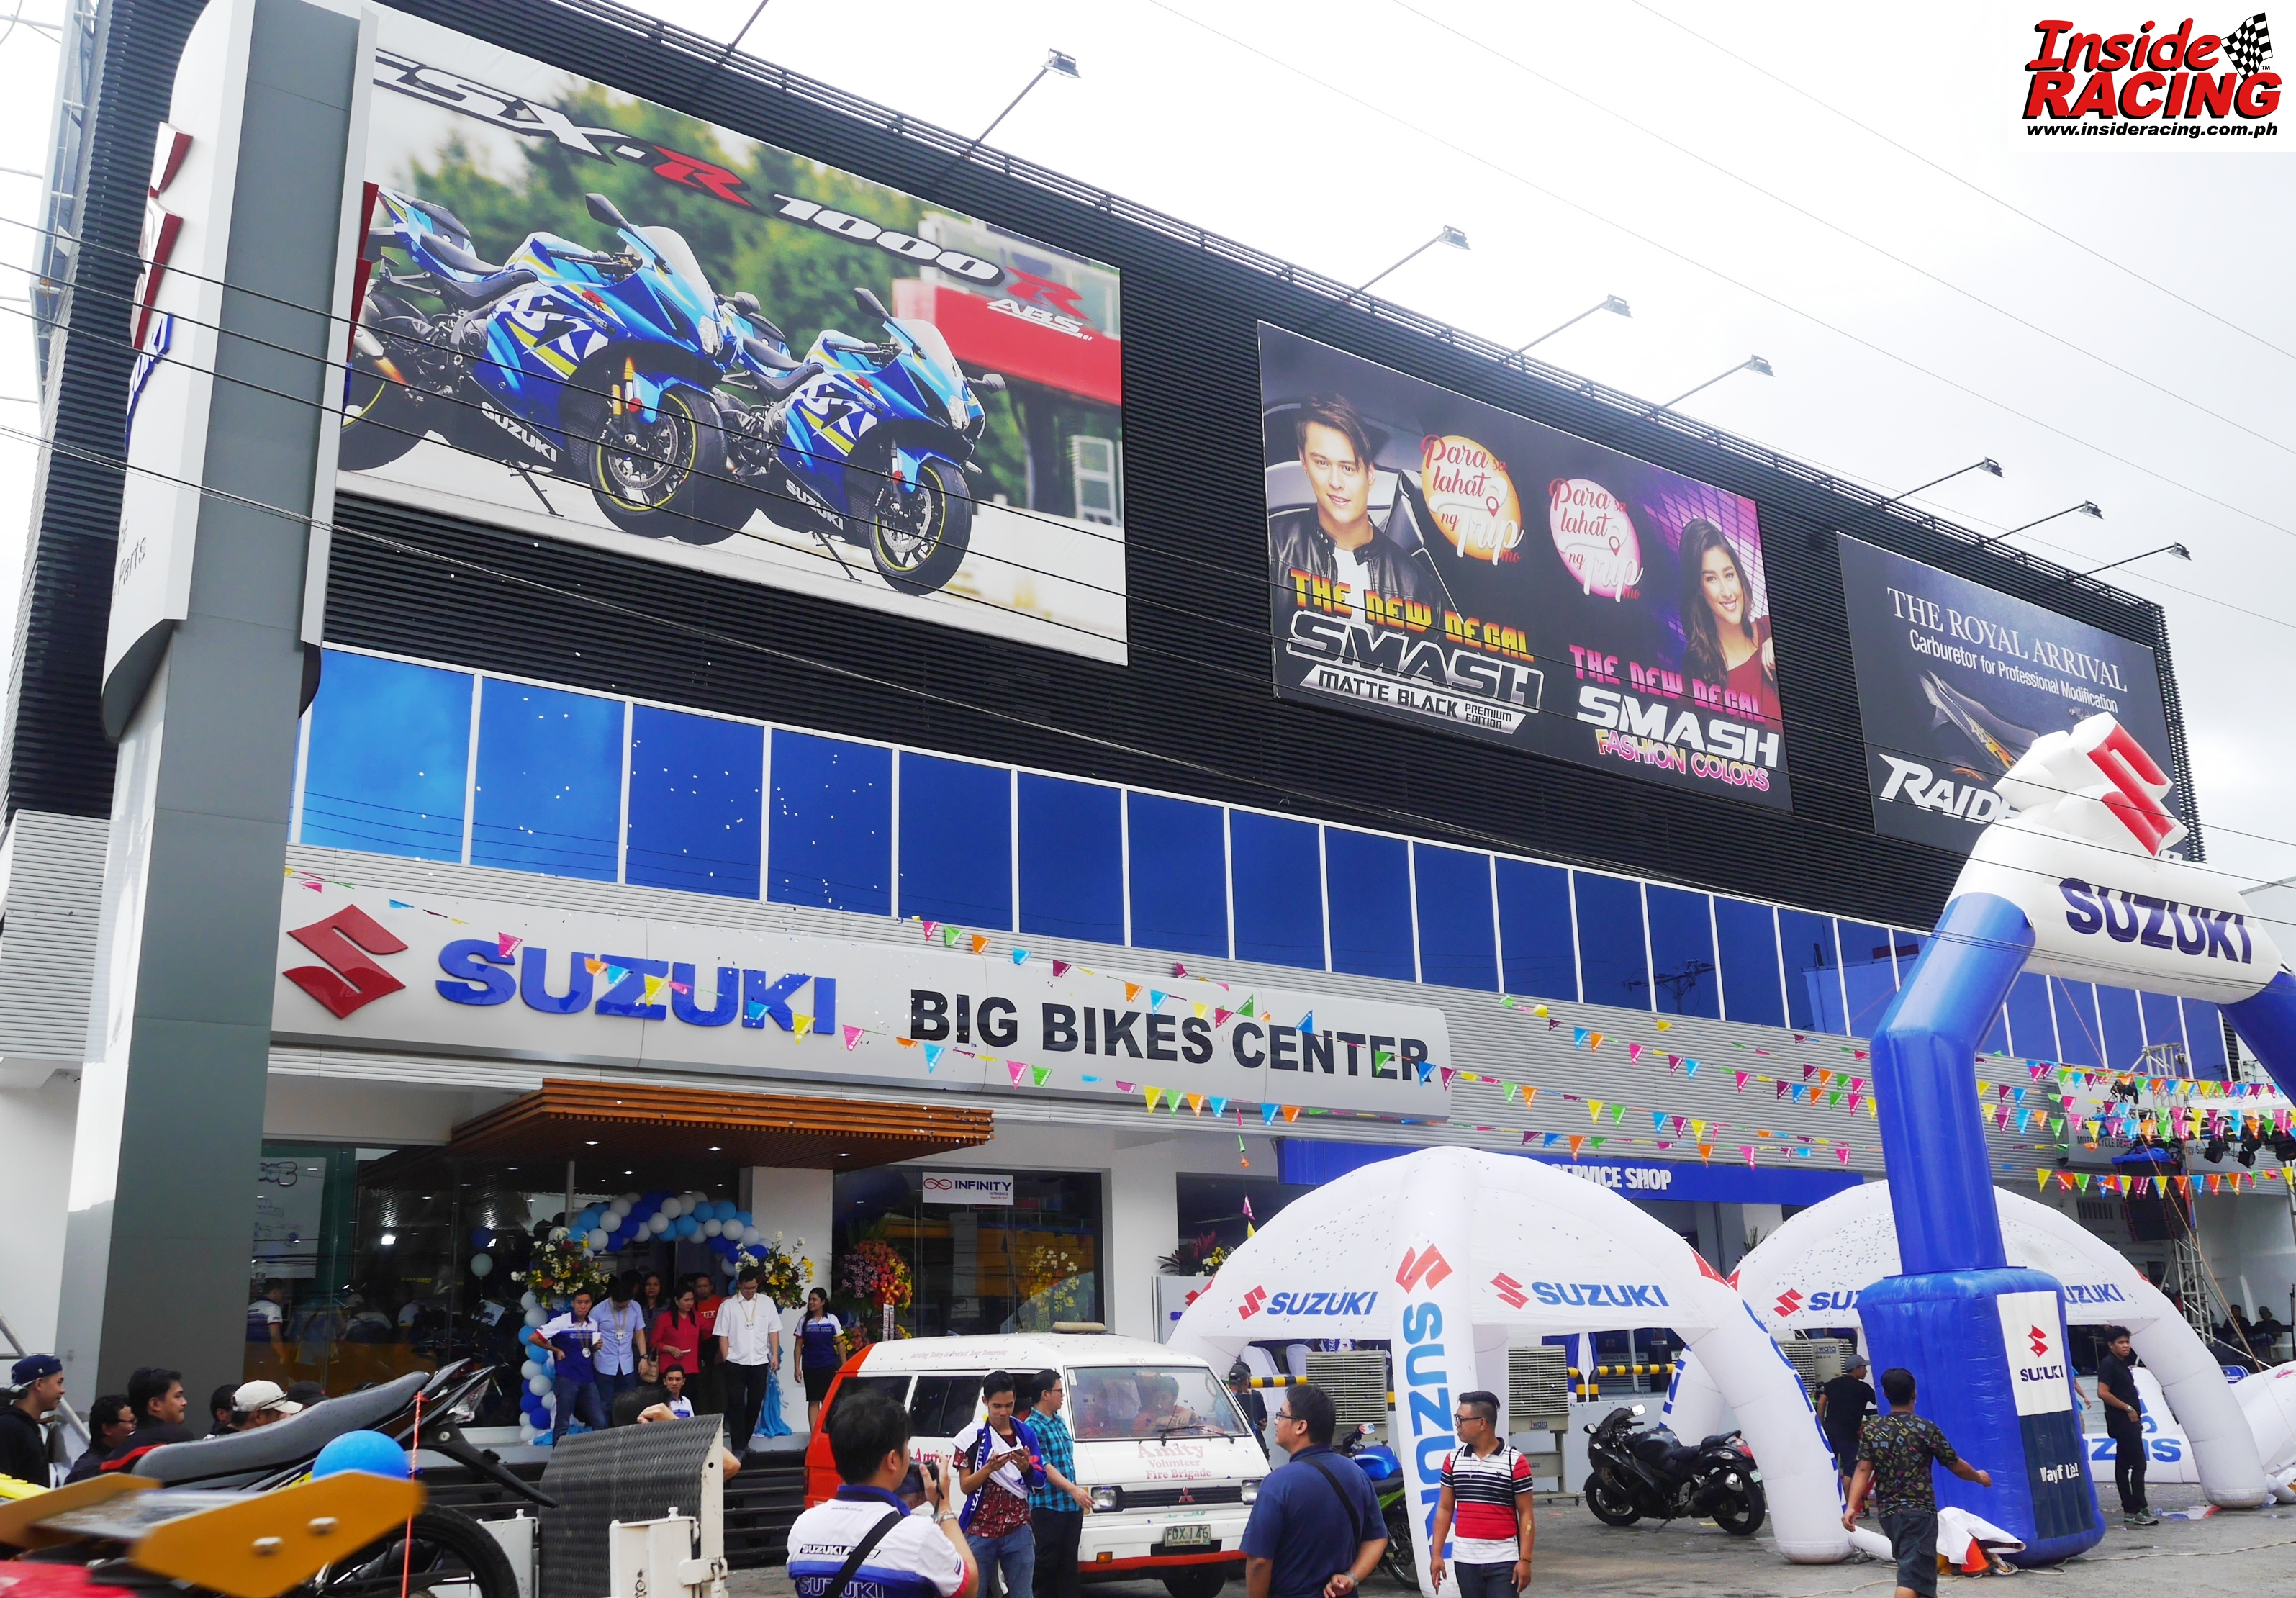 N likewise Skydrive also Df E further Carburetor Vs Fuel Injector System together with Za Motorcycle. on suzuki skydrive 125 motorcycle